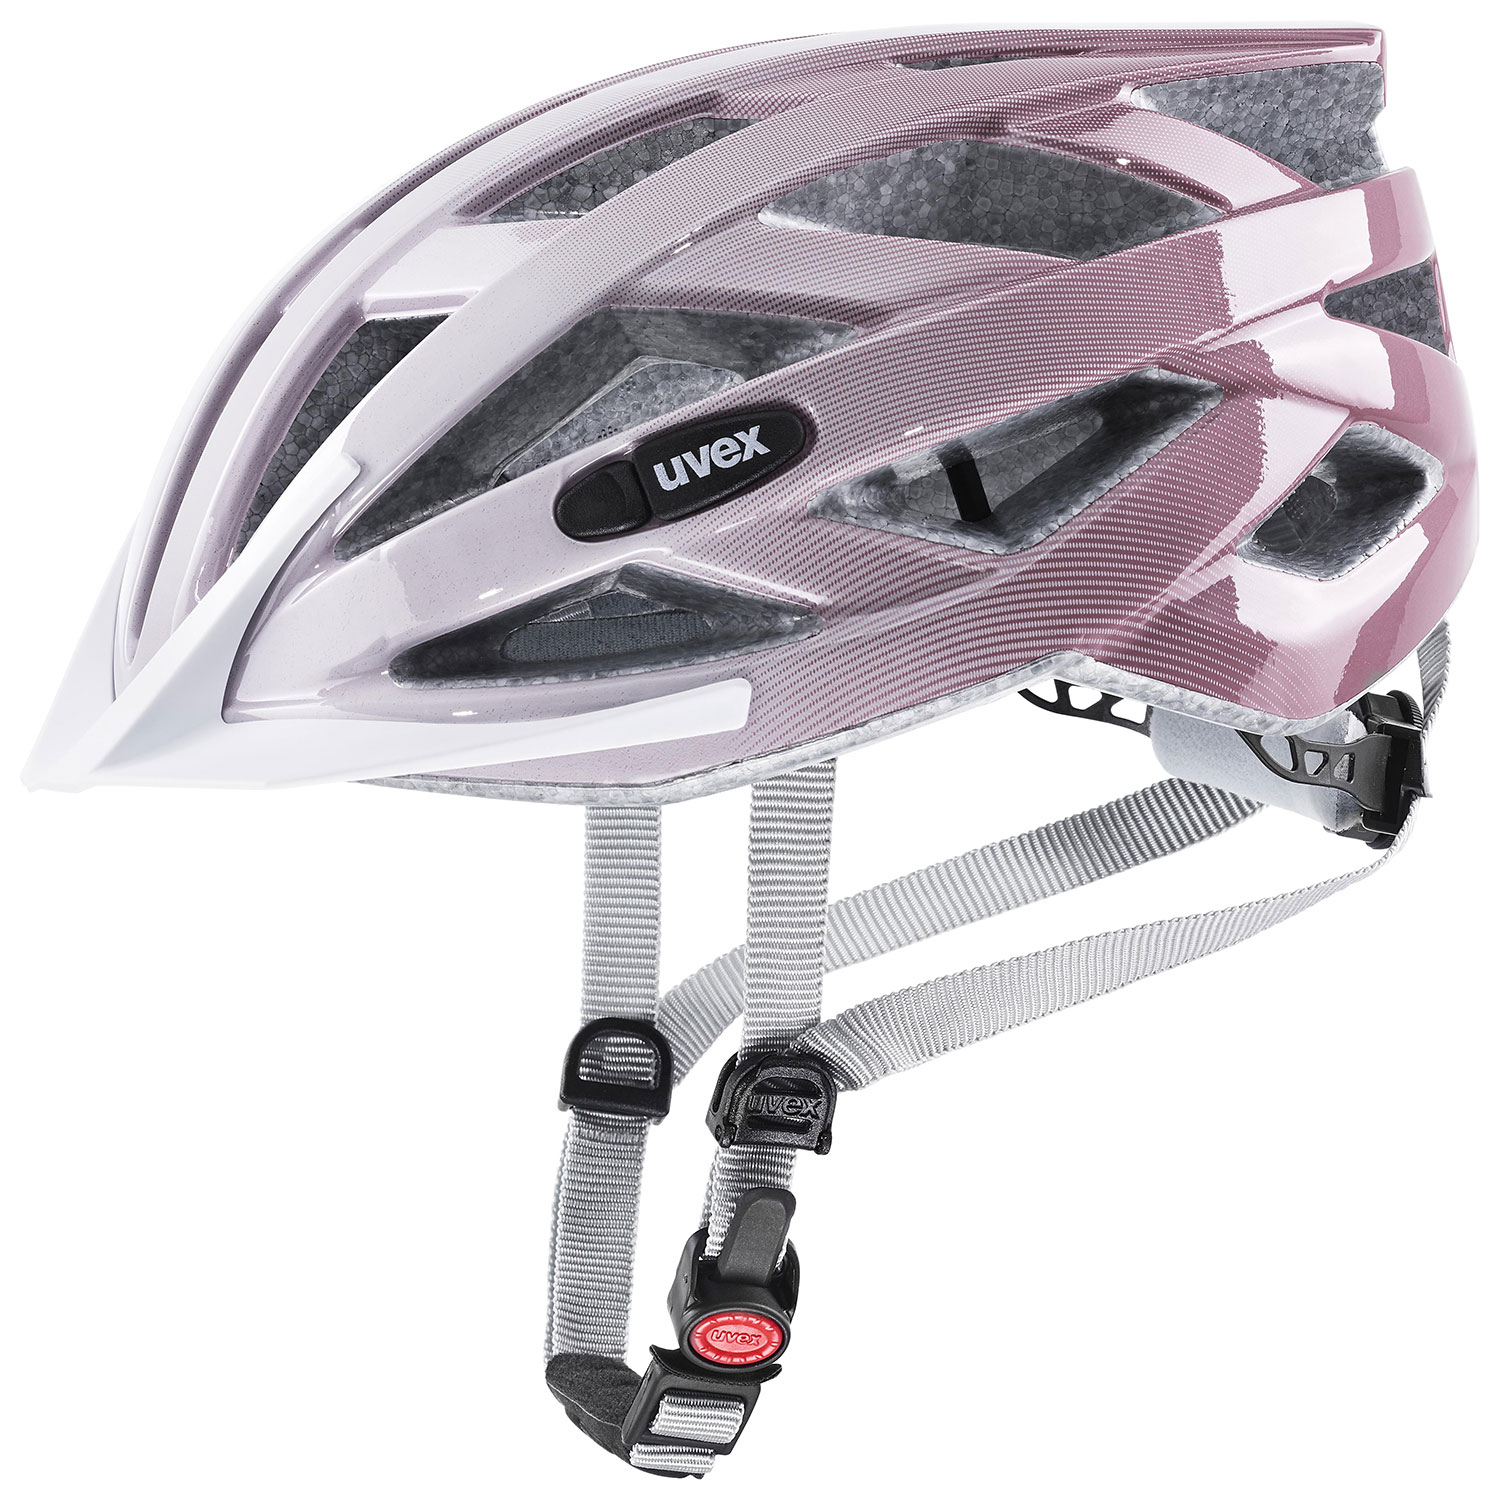 2021 UVEX HELMA AIR WING, WHITE - ROSÉ 52-57